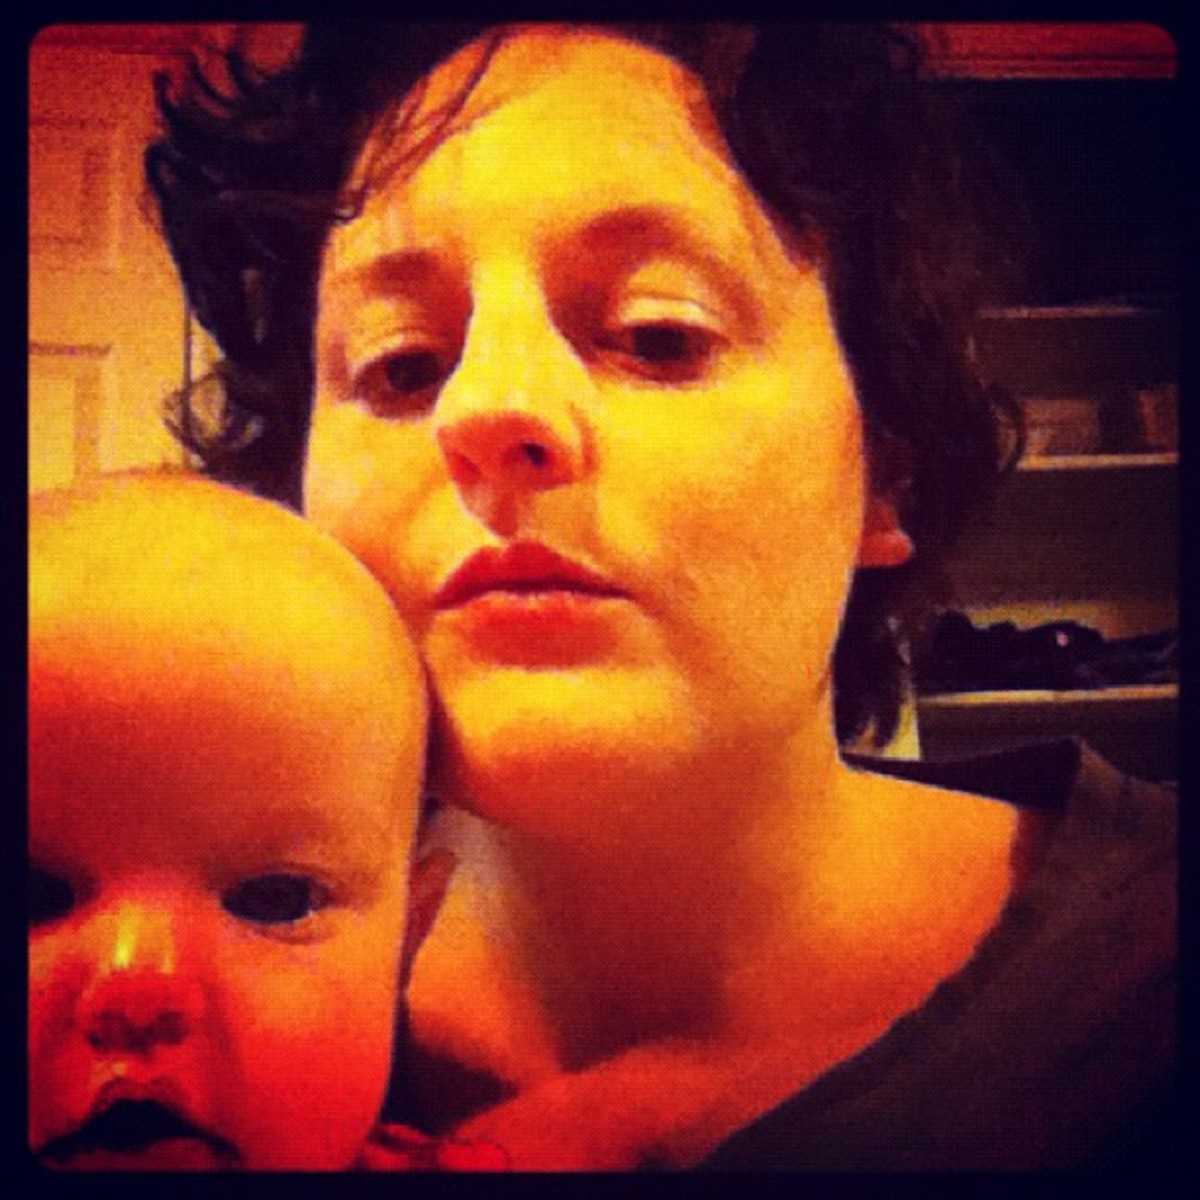 The author without makeup (new resolution?) with a completed 2011 resolution (have a baby)